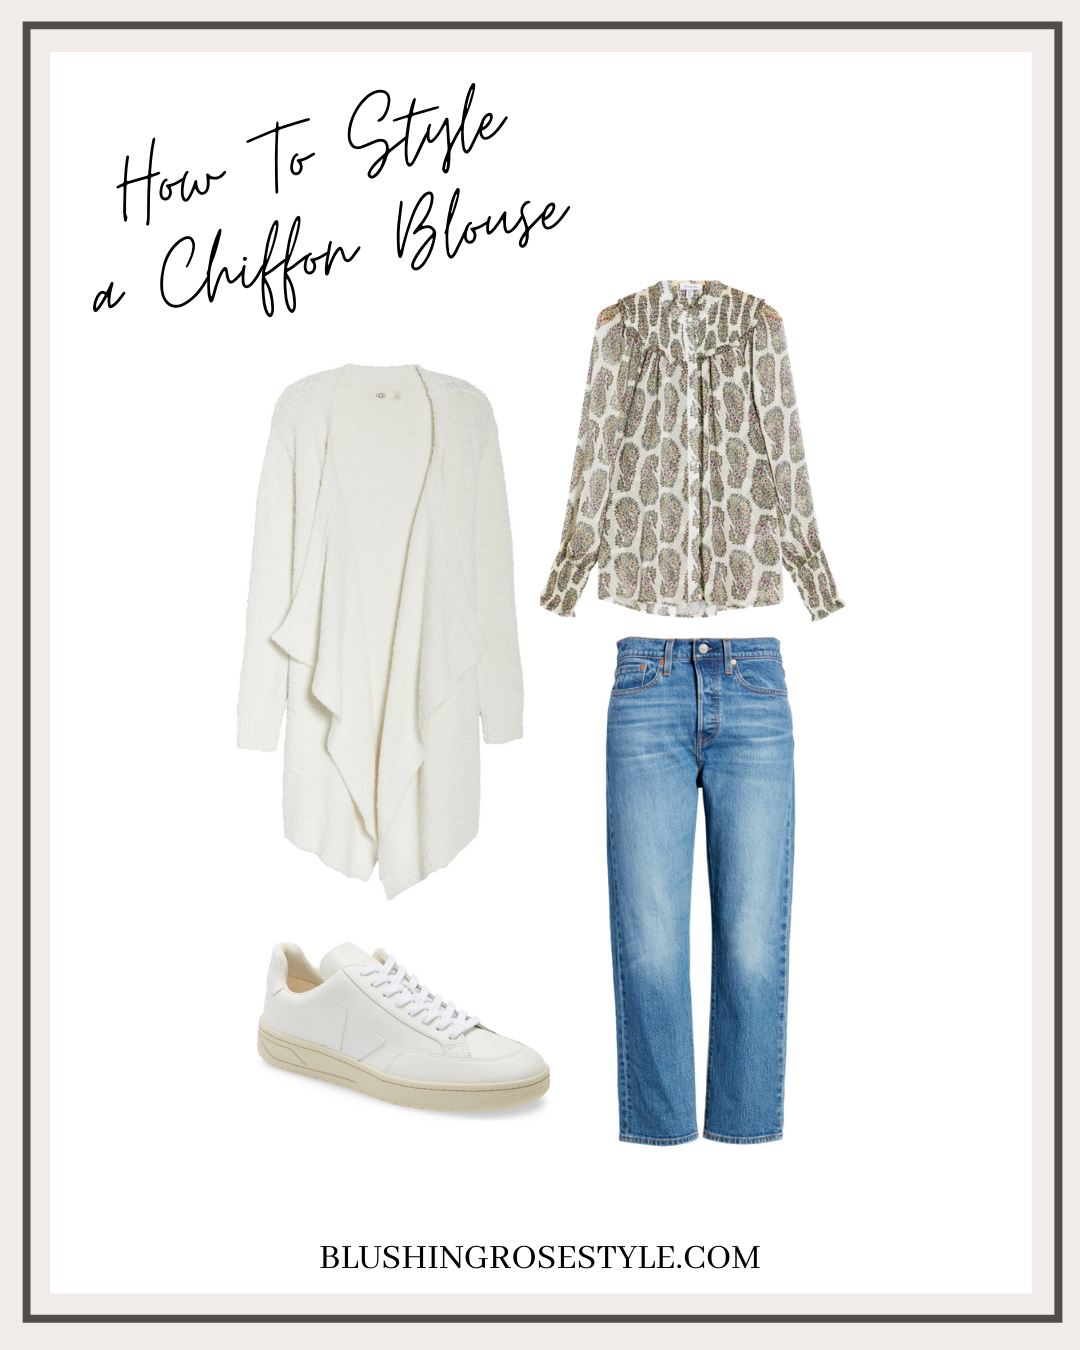 outfit idea with chiffon blouse, fall outfit idea